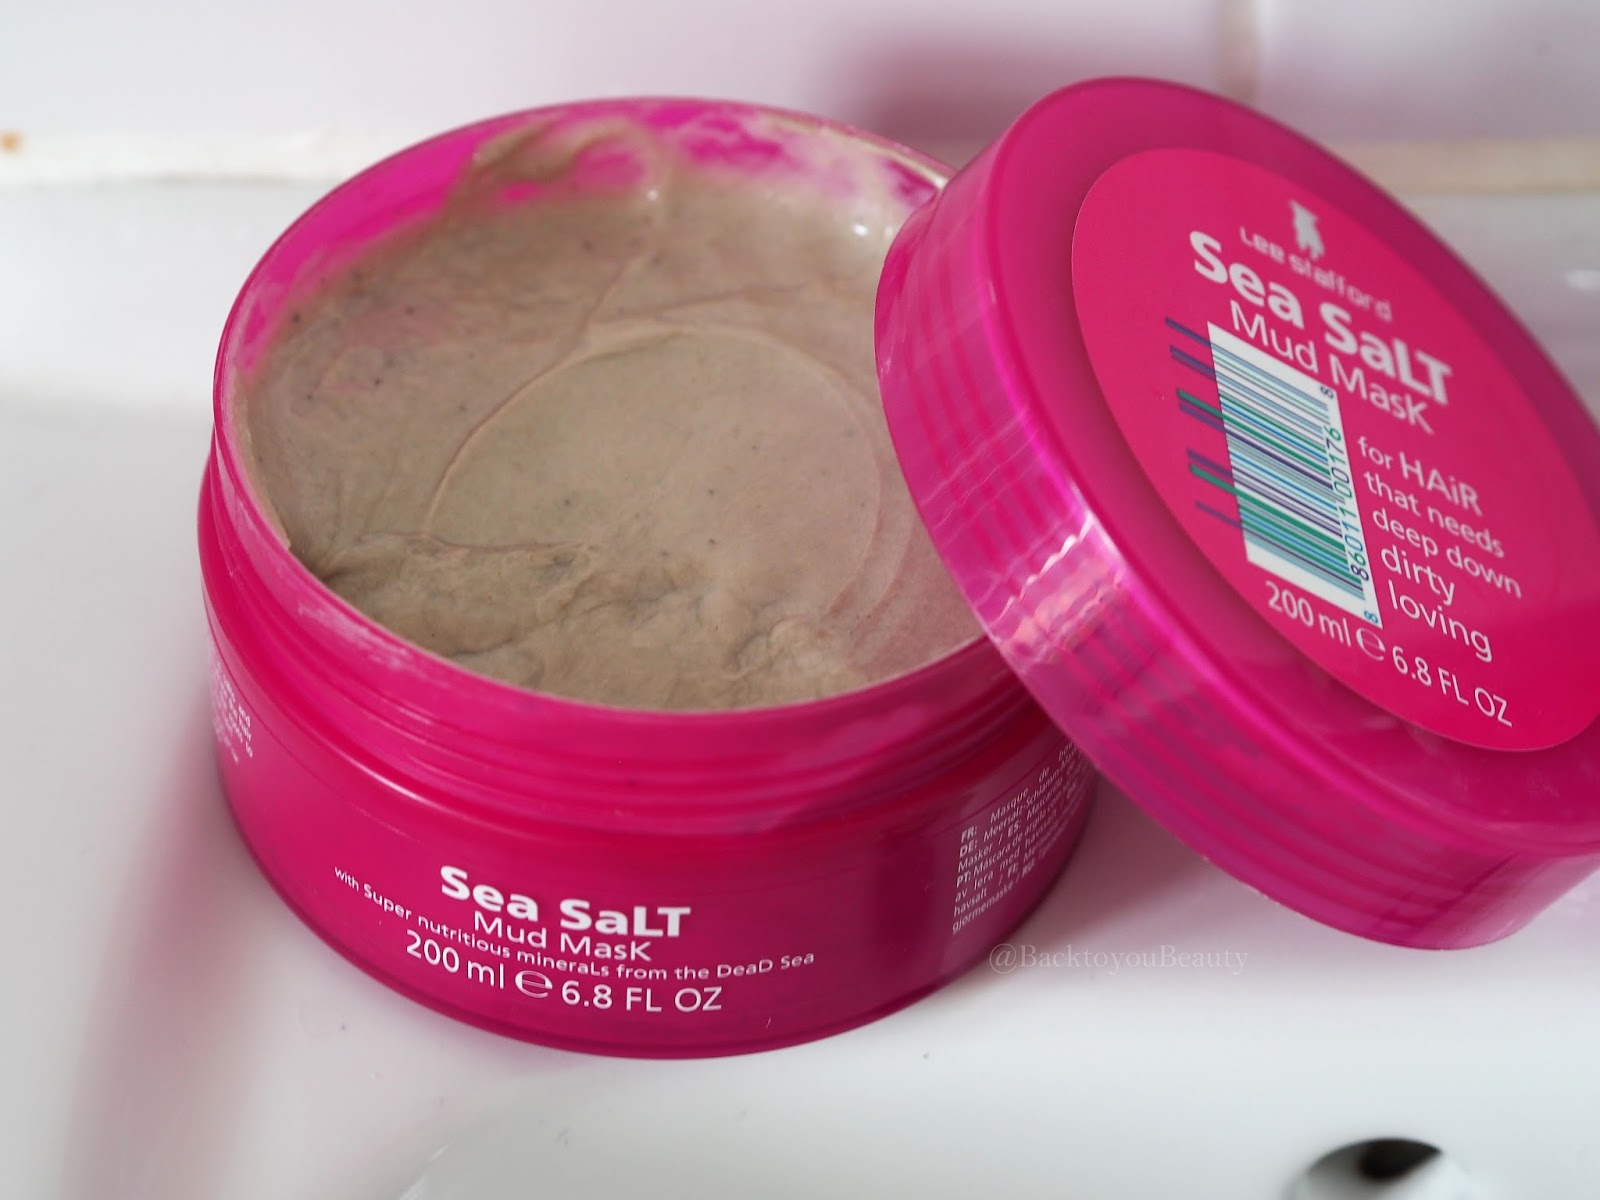 Lee Stafford Sea Salt Mud Mask